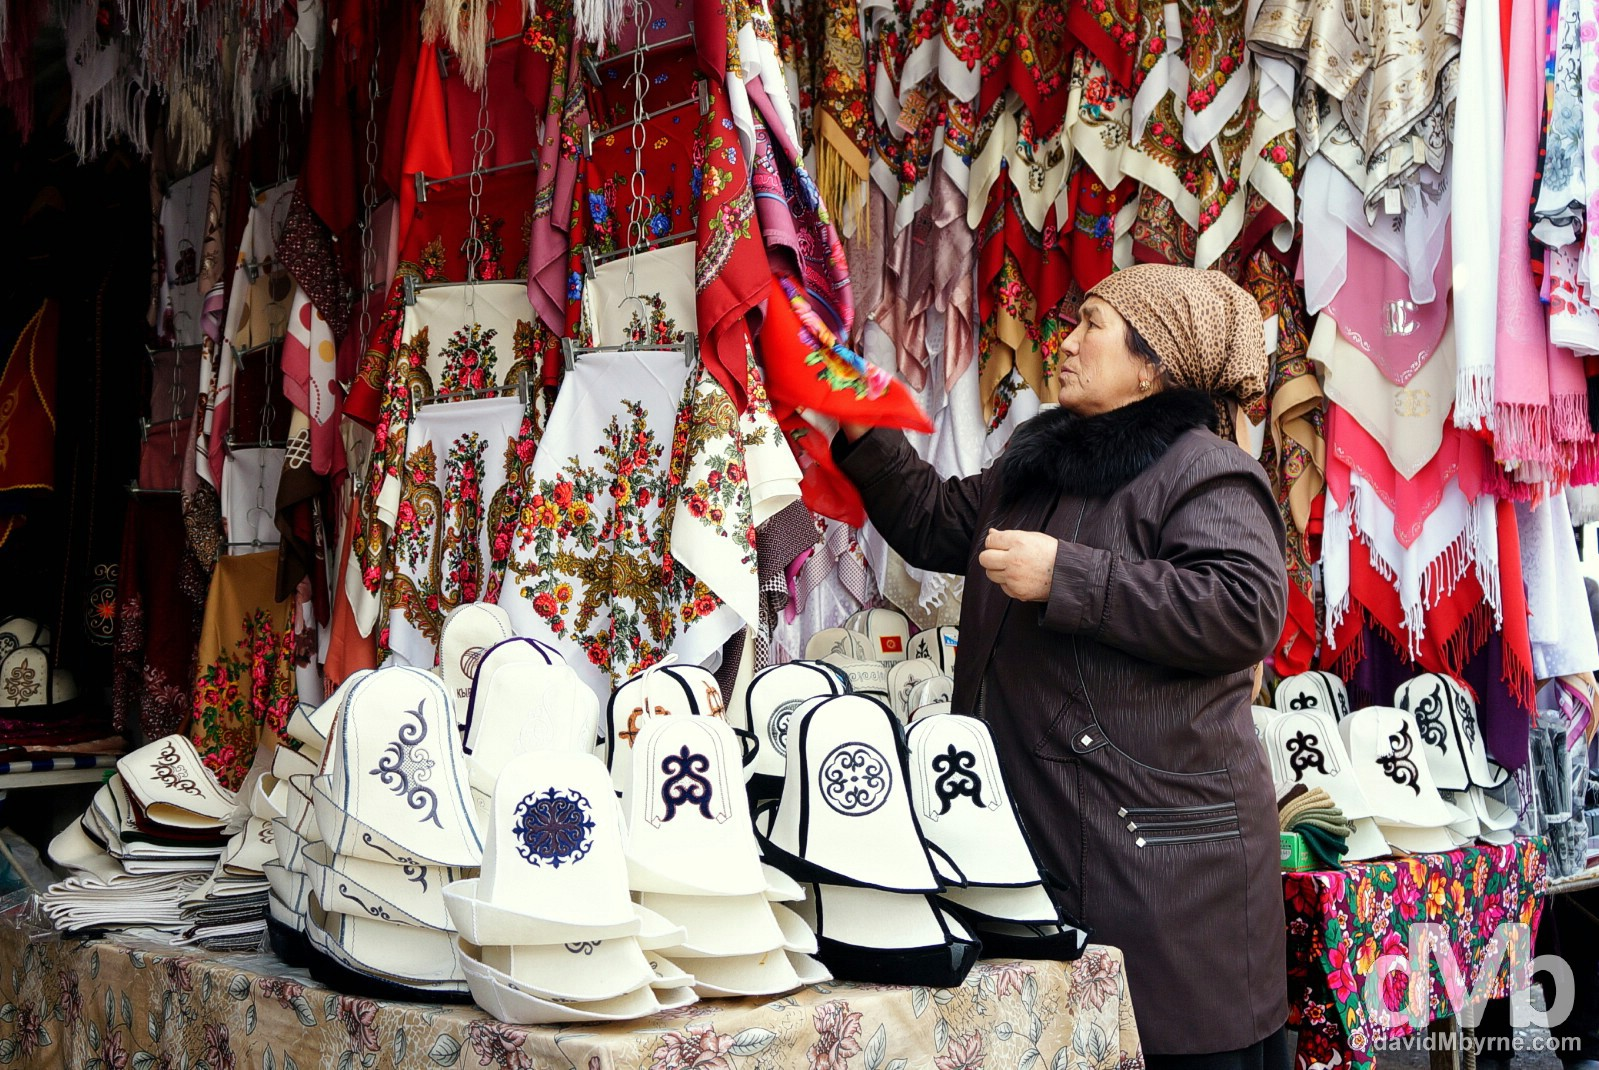 Silk scarfs & traditional white ak-kalpak hats on sale at a stall in the bazaar in Osh, southern Kyrgyzstan. March 3, 2015.